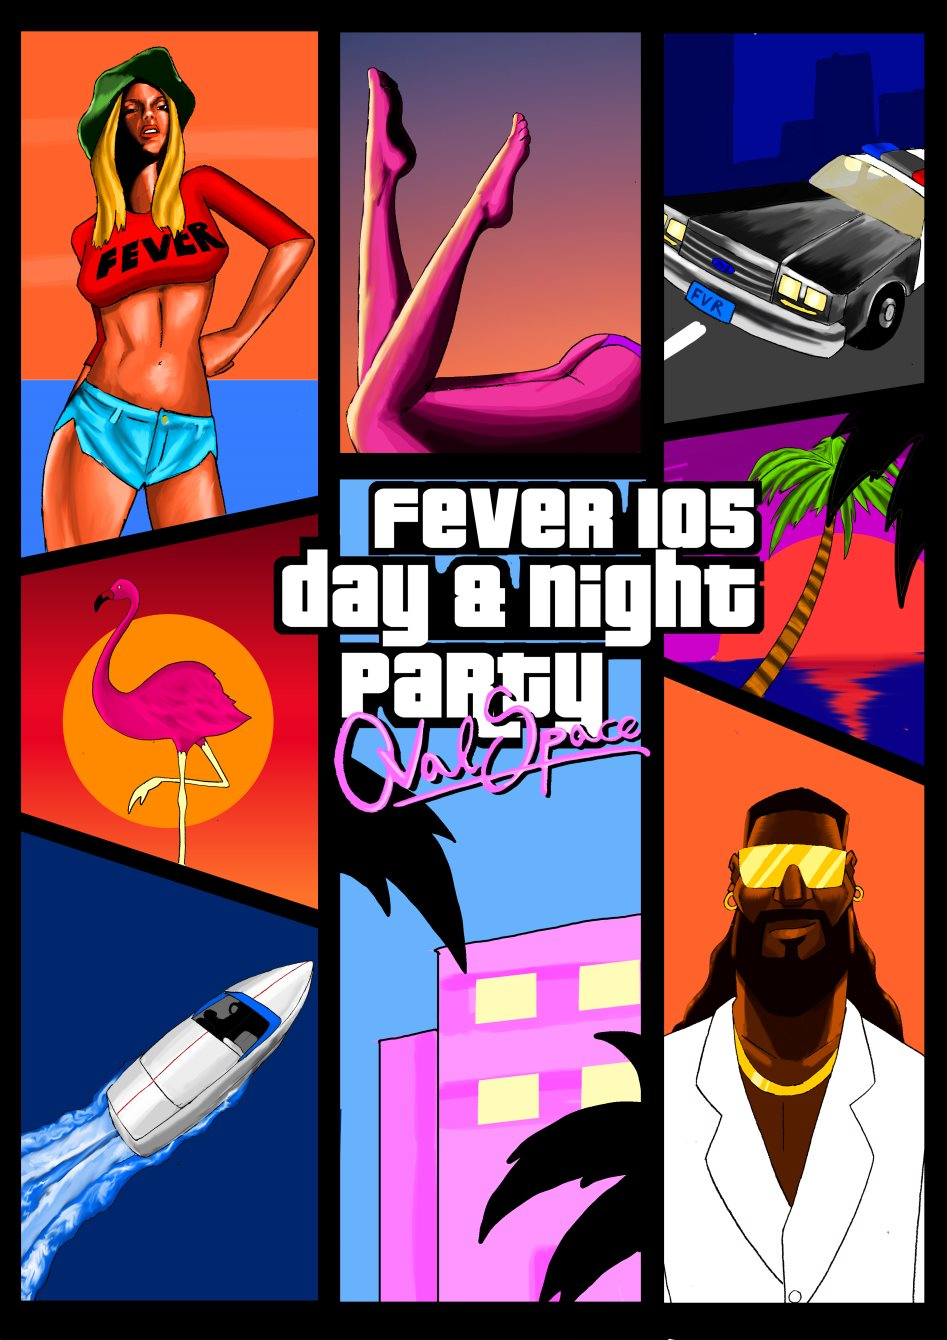 Ra Fever 105 S Grand Theft Auto Vice City Day And Night